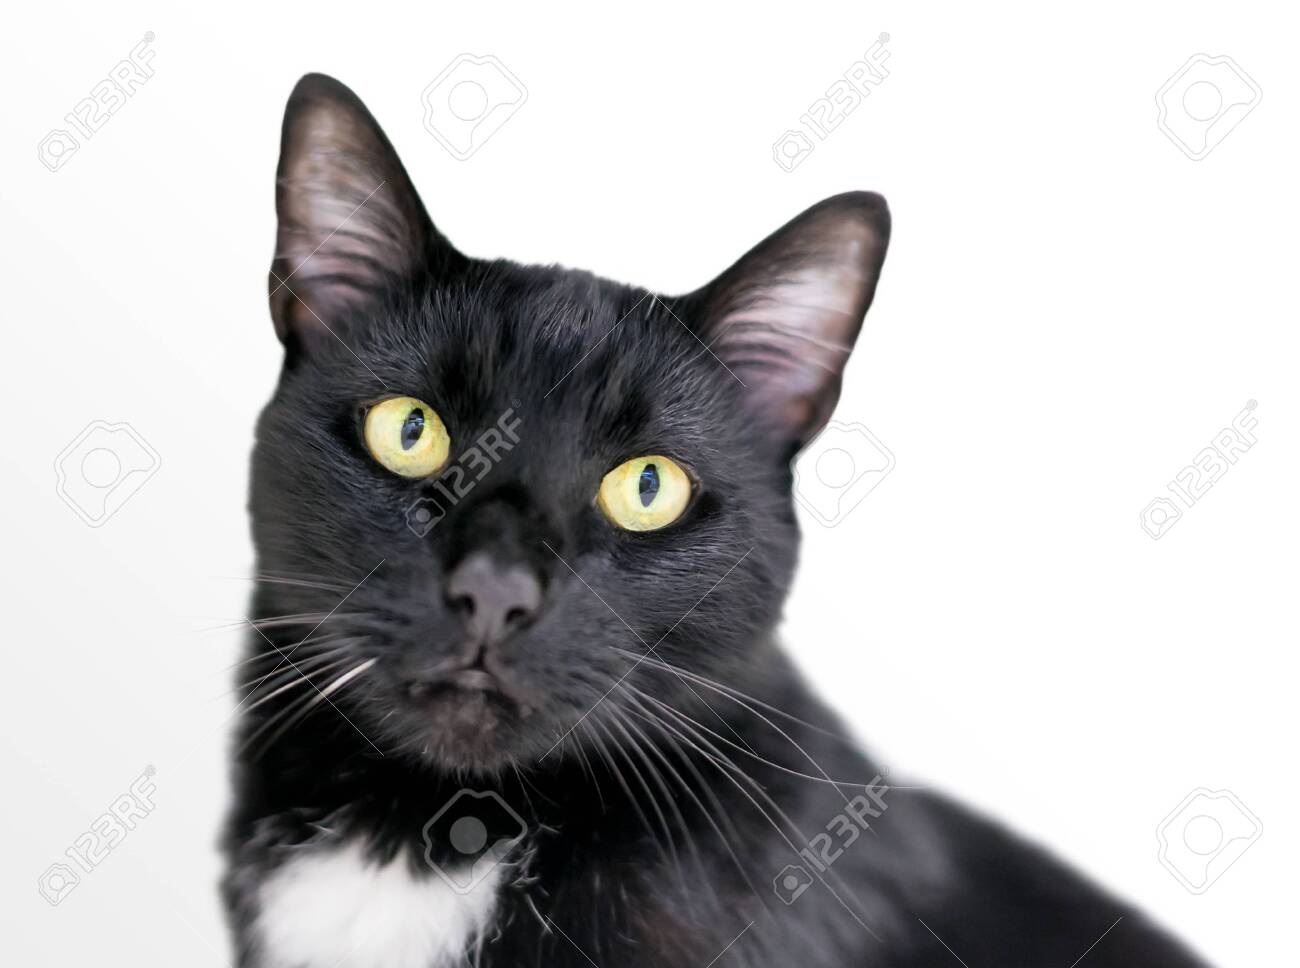 A Black And White Domestic Shorthair Tuxedo Cat With Yellow Eyes Stock Photo Picture And Royalty Free Image Image 138555033